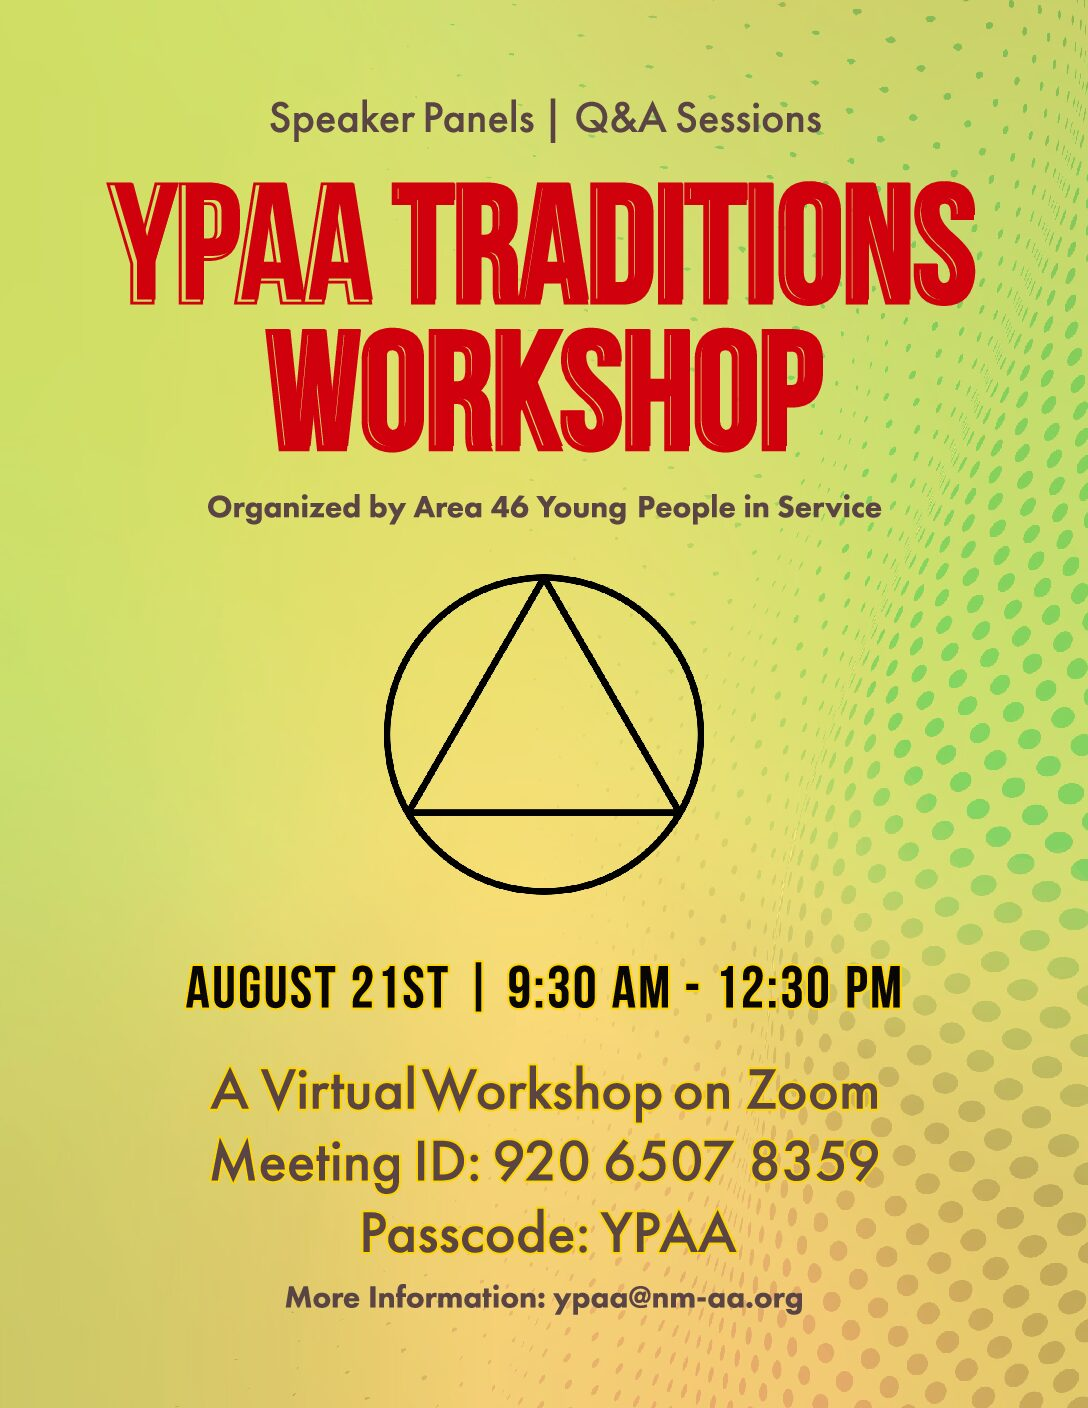 YPAA 2021 traditions workshop flyer